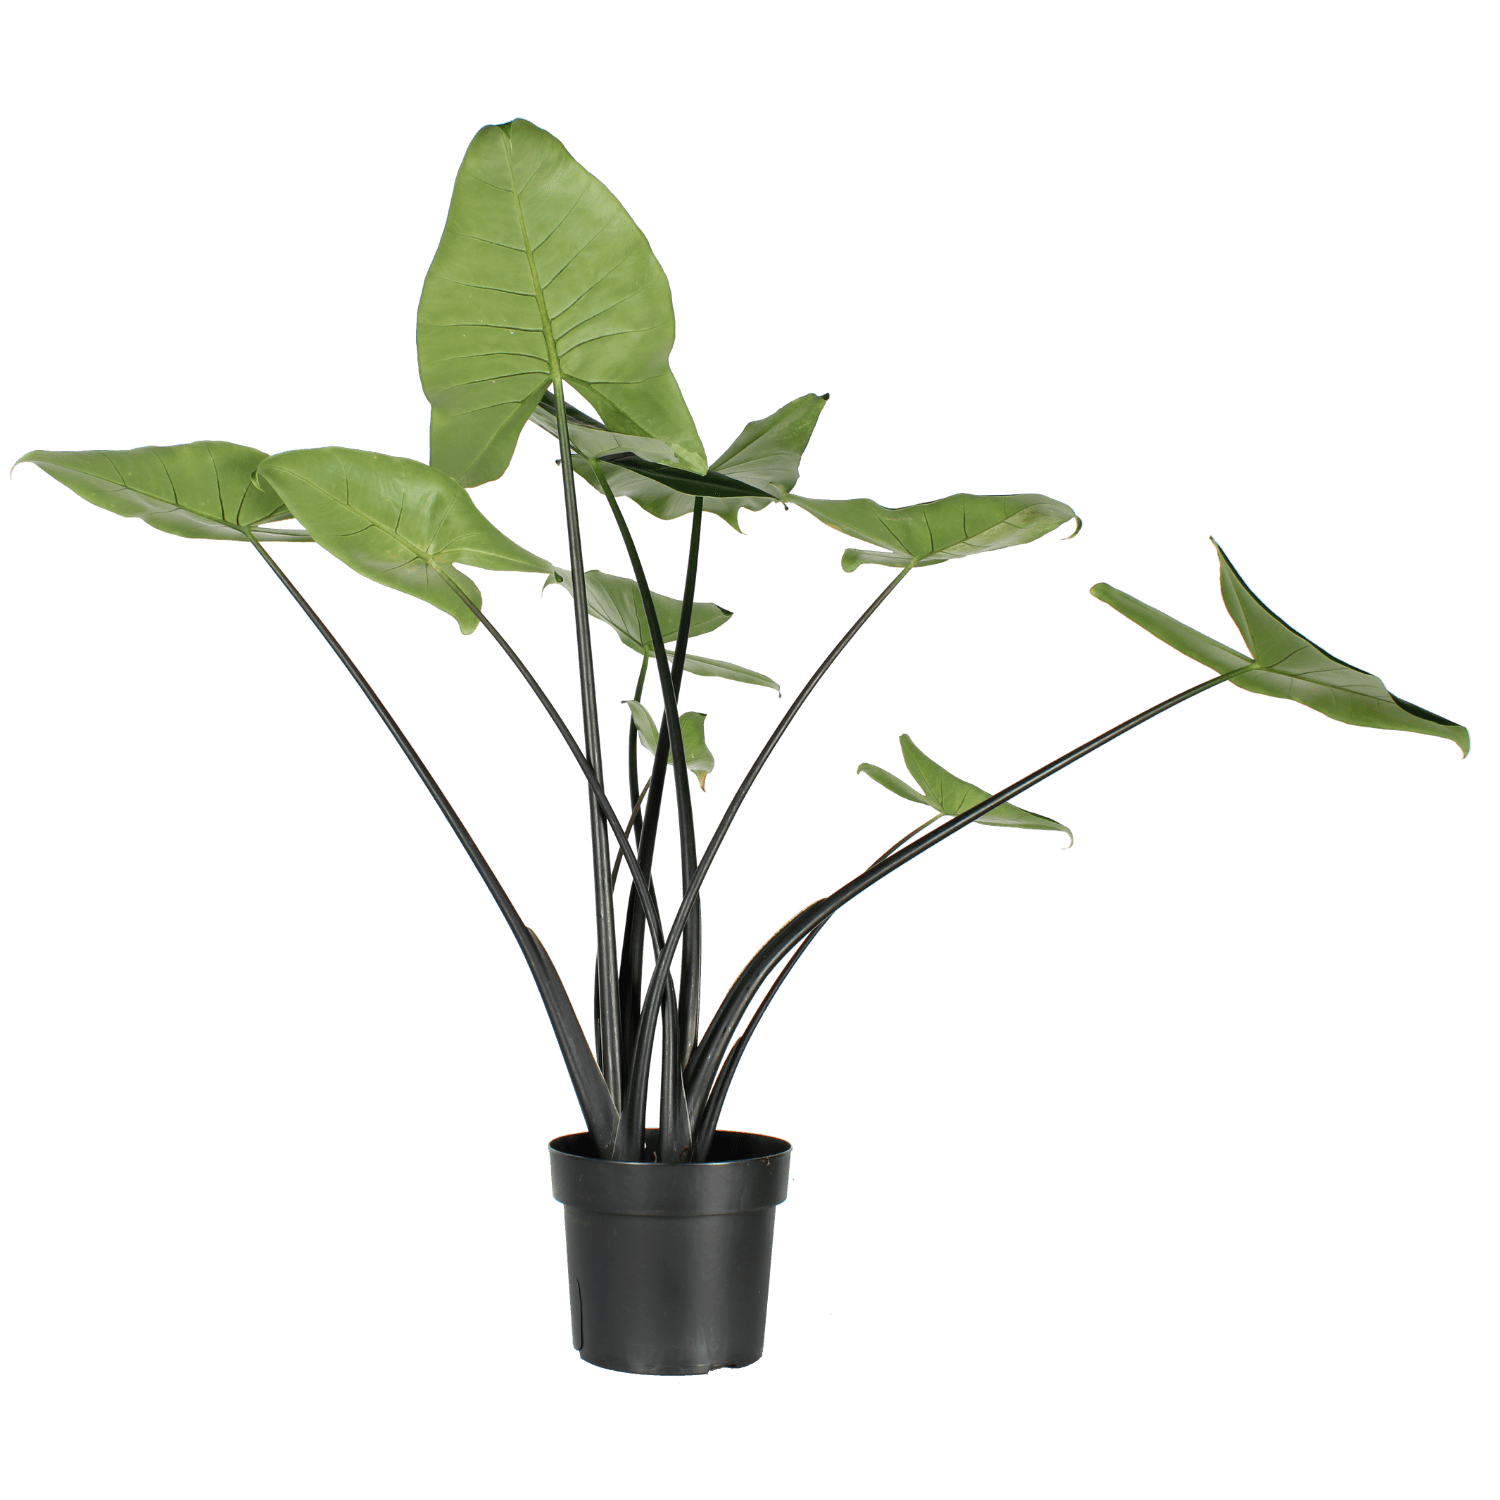 Alocasia Zebrina Black Stem - Variegated